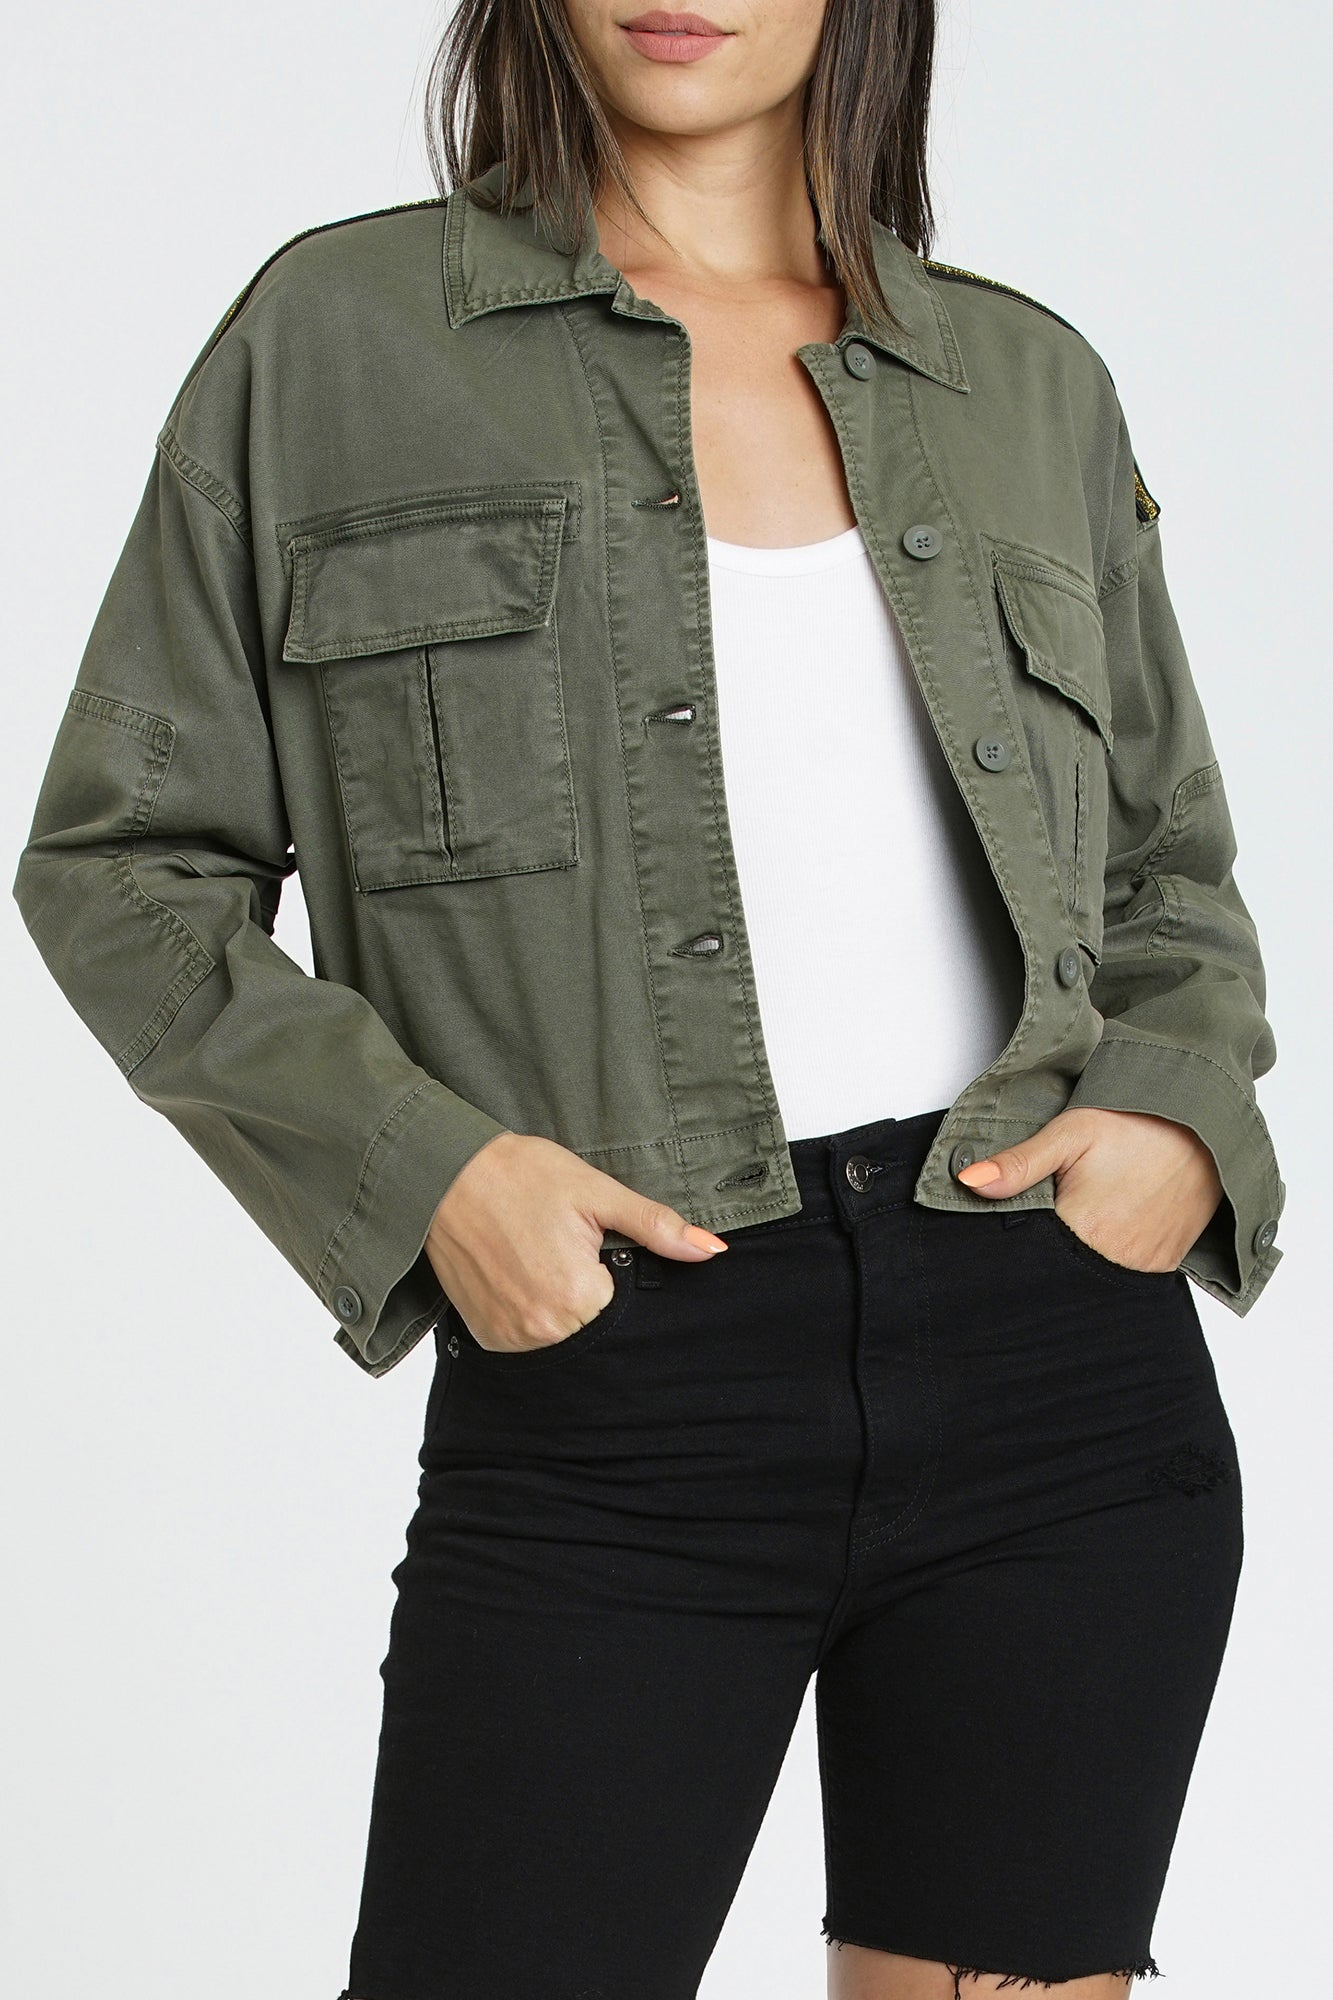 Cove Cropped Military Jacket - Sweet Bay Olive